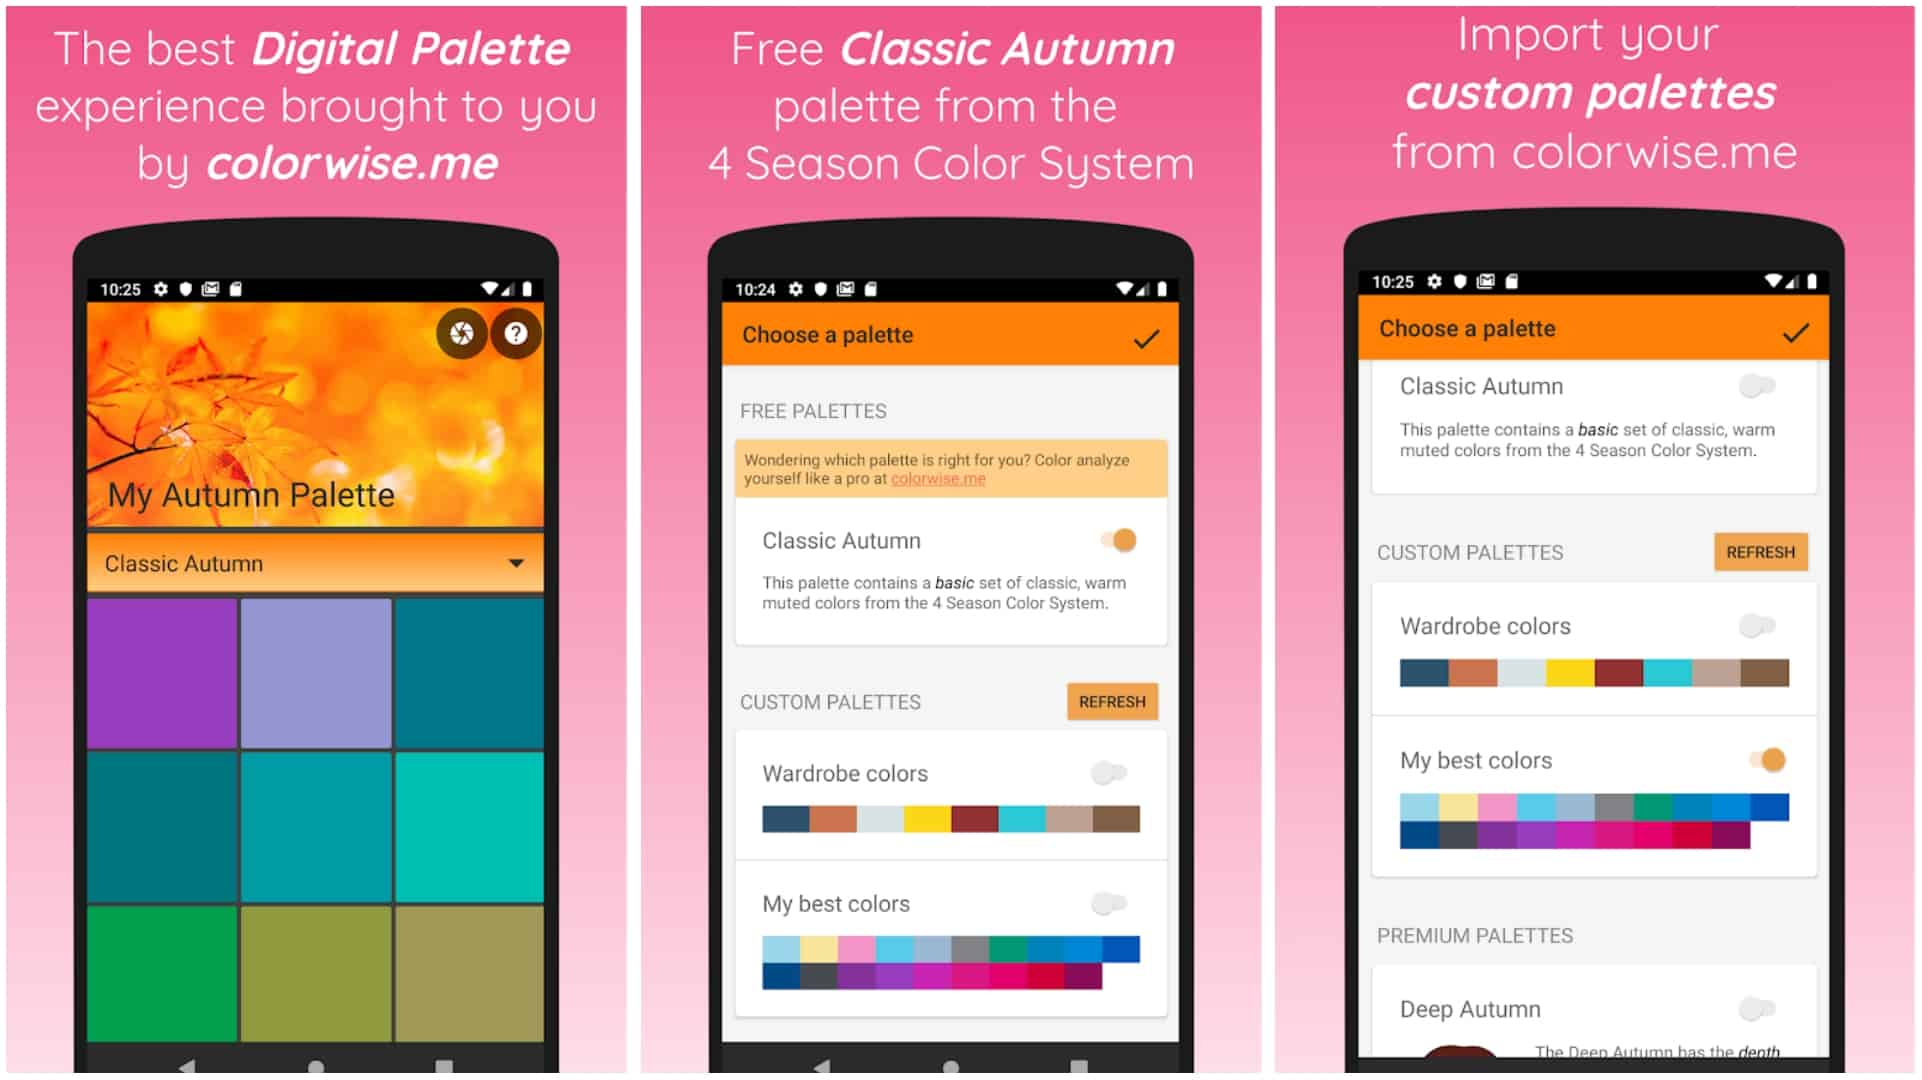 My Autumn Palette app grid image